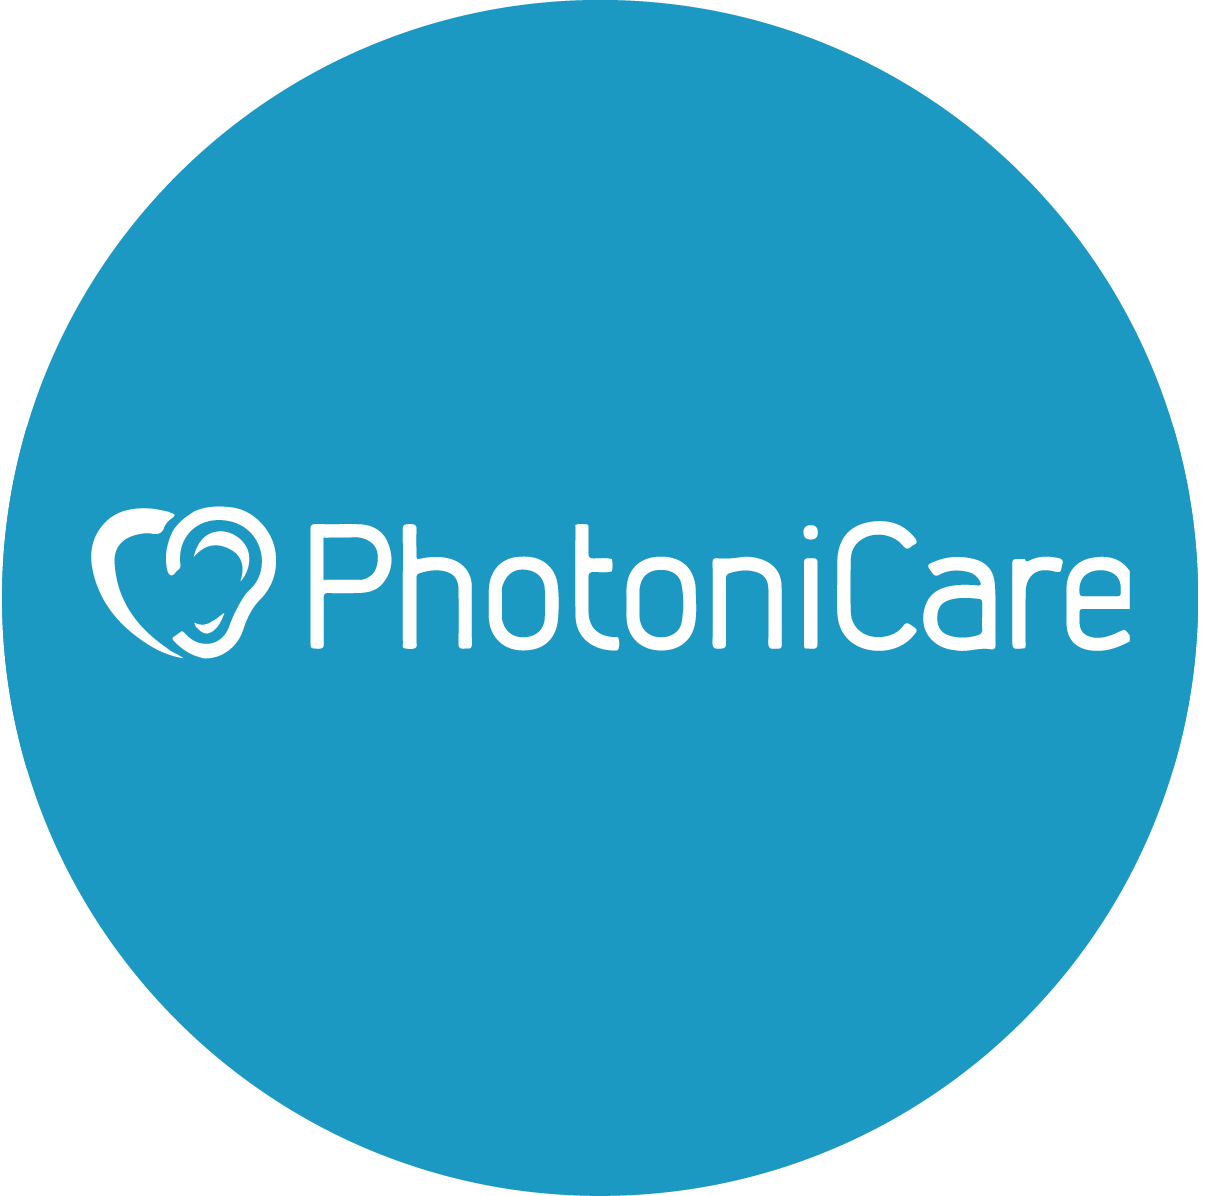 Photonicare.png